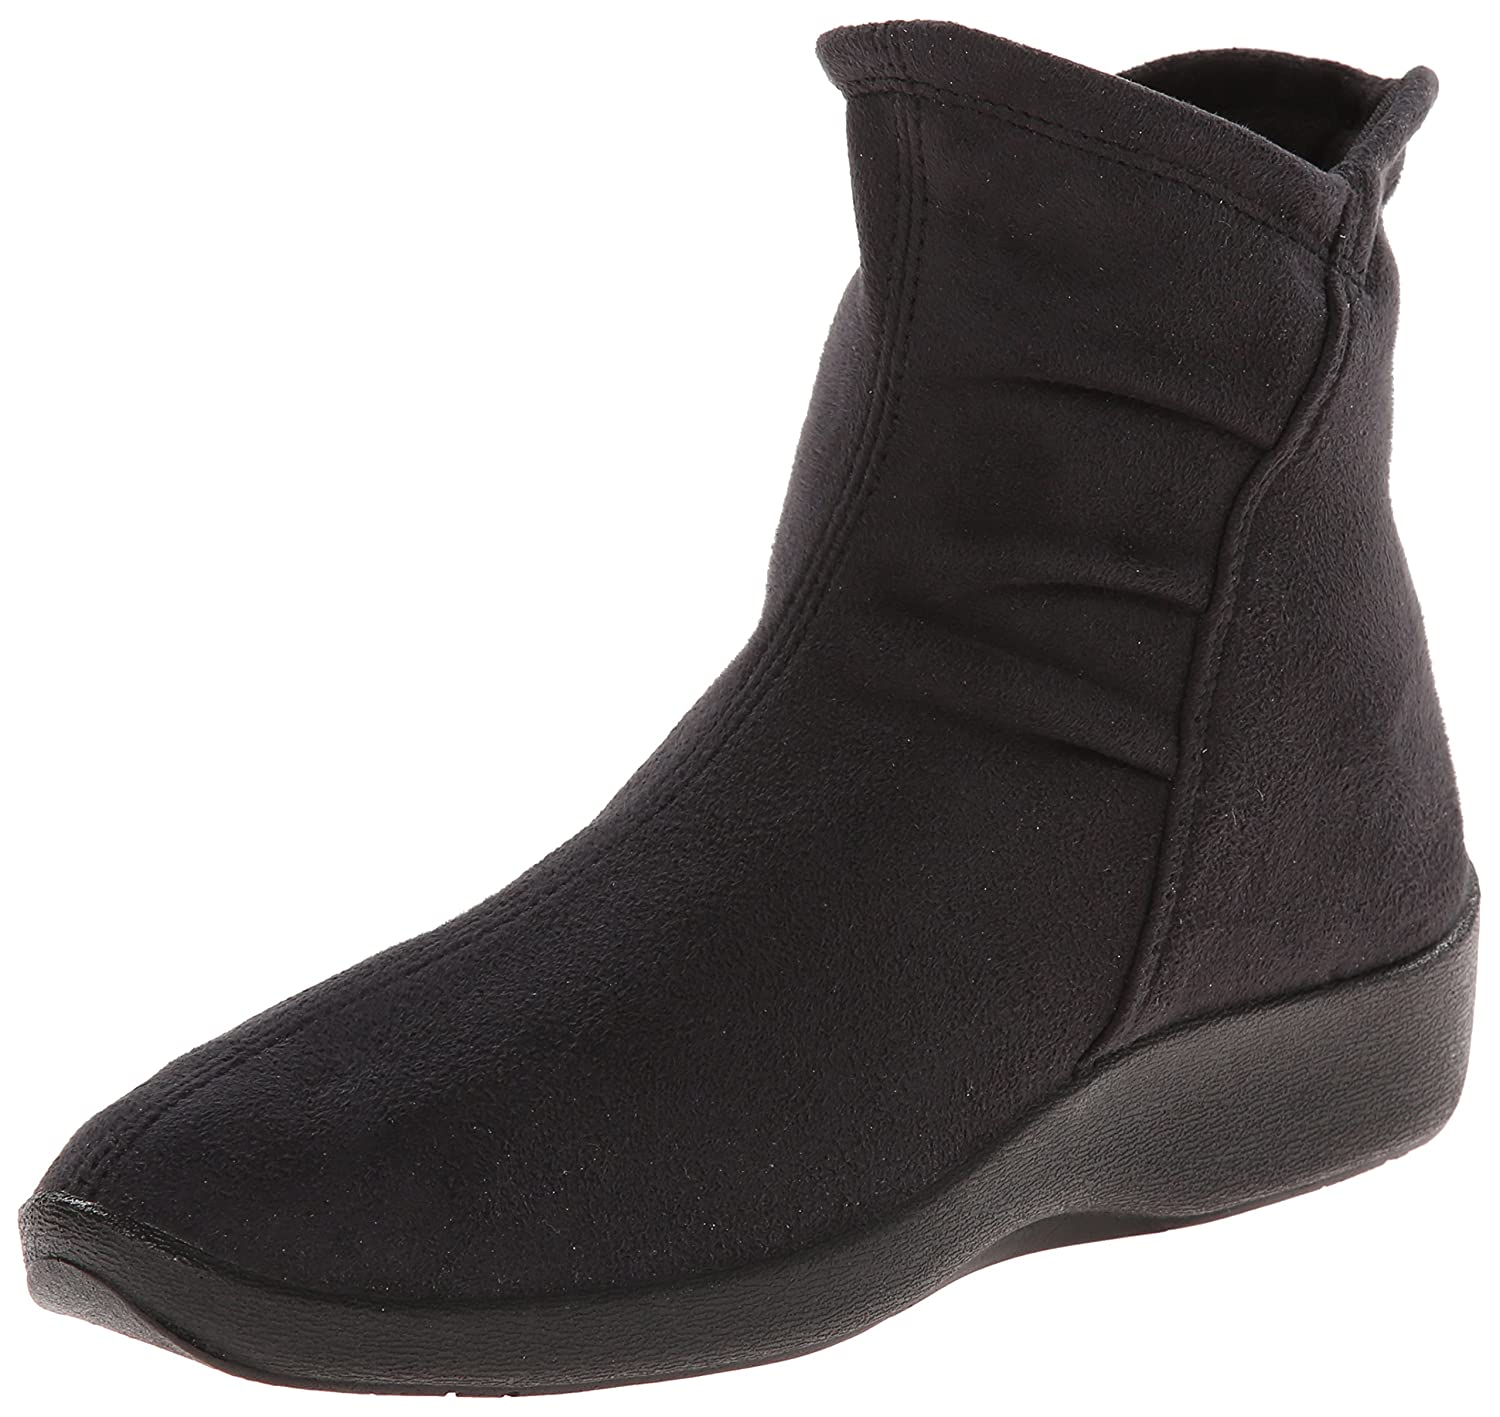 Arcopedico Women's L19 Boot B003EJADOC 42 (US Women's 10.5-11) M|Black Faux Suede